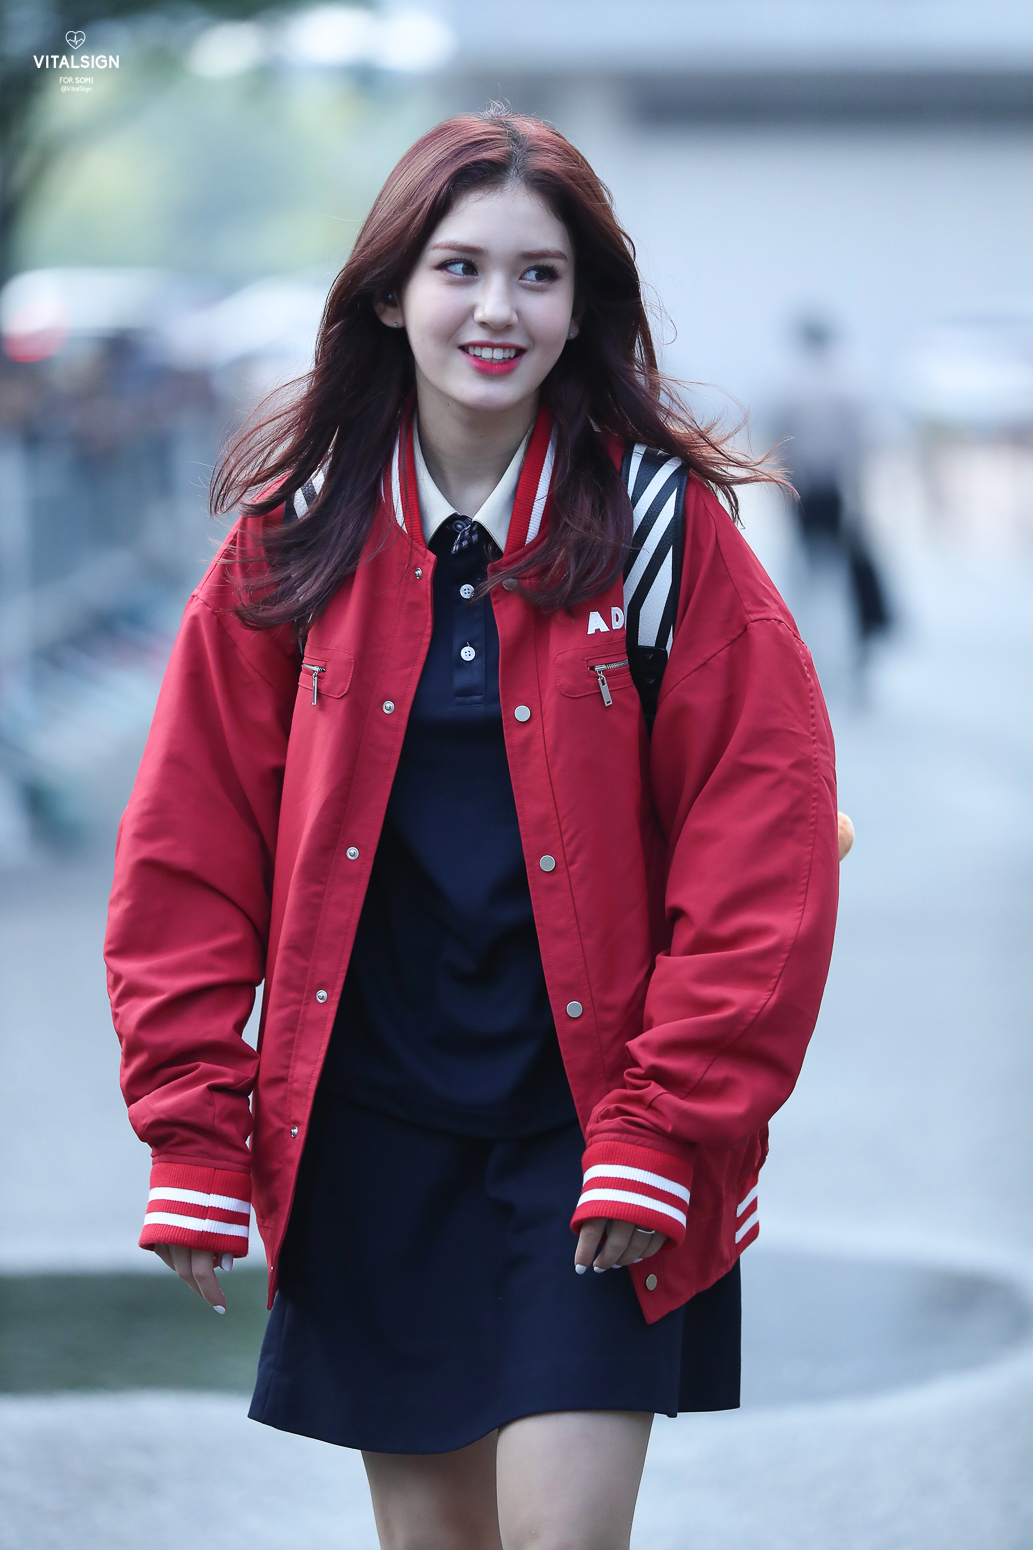 Jeon Somi Android Iphone Wallpaper 92174 Asiachan Kpop